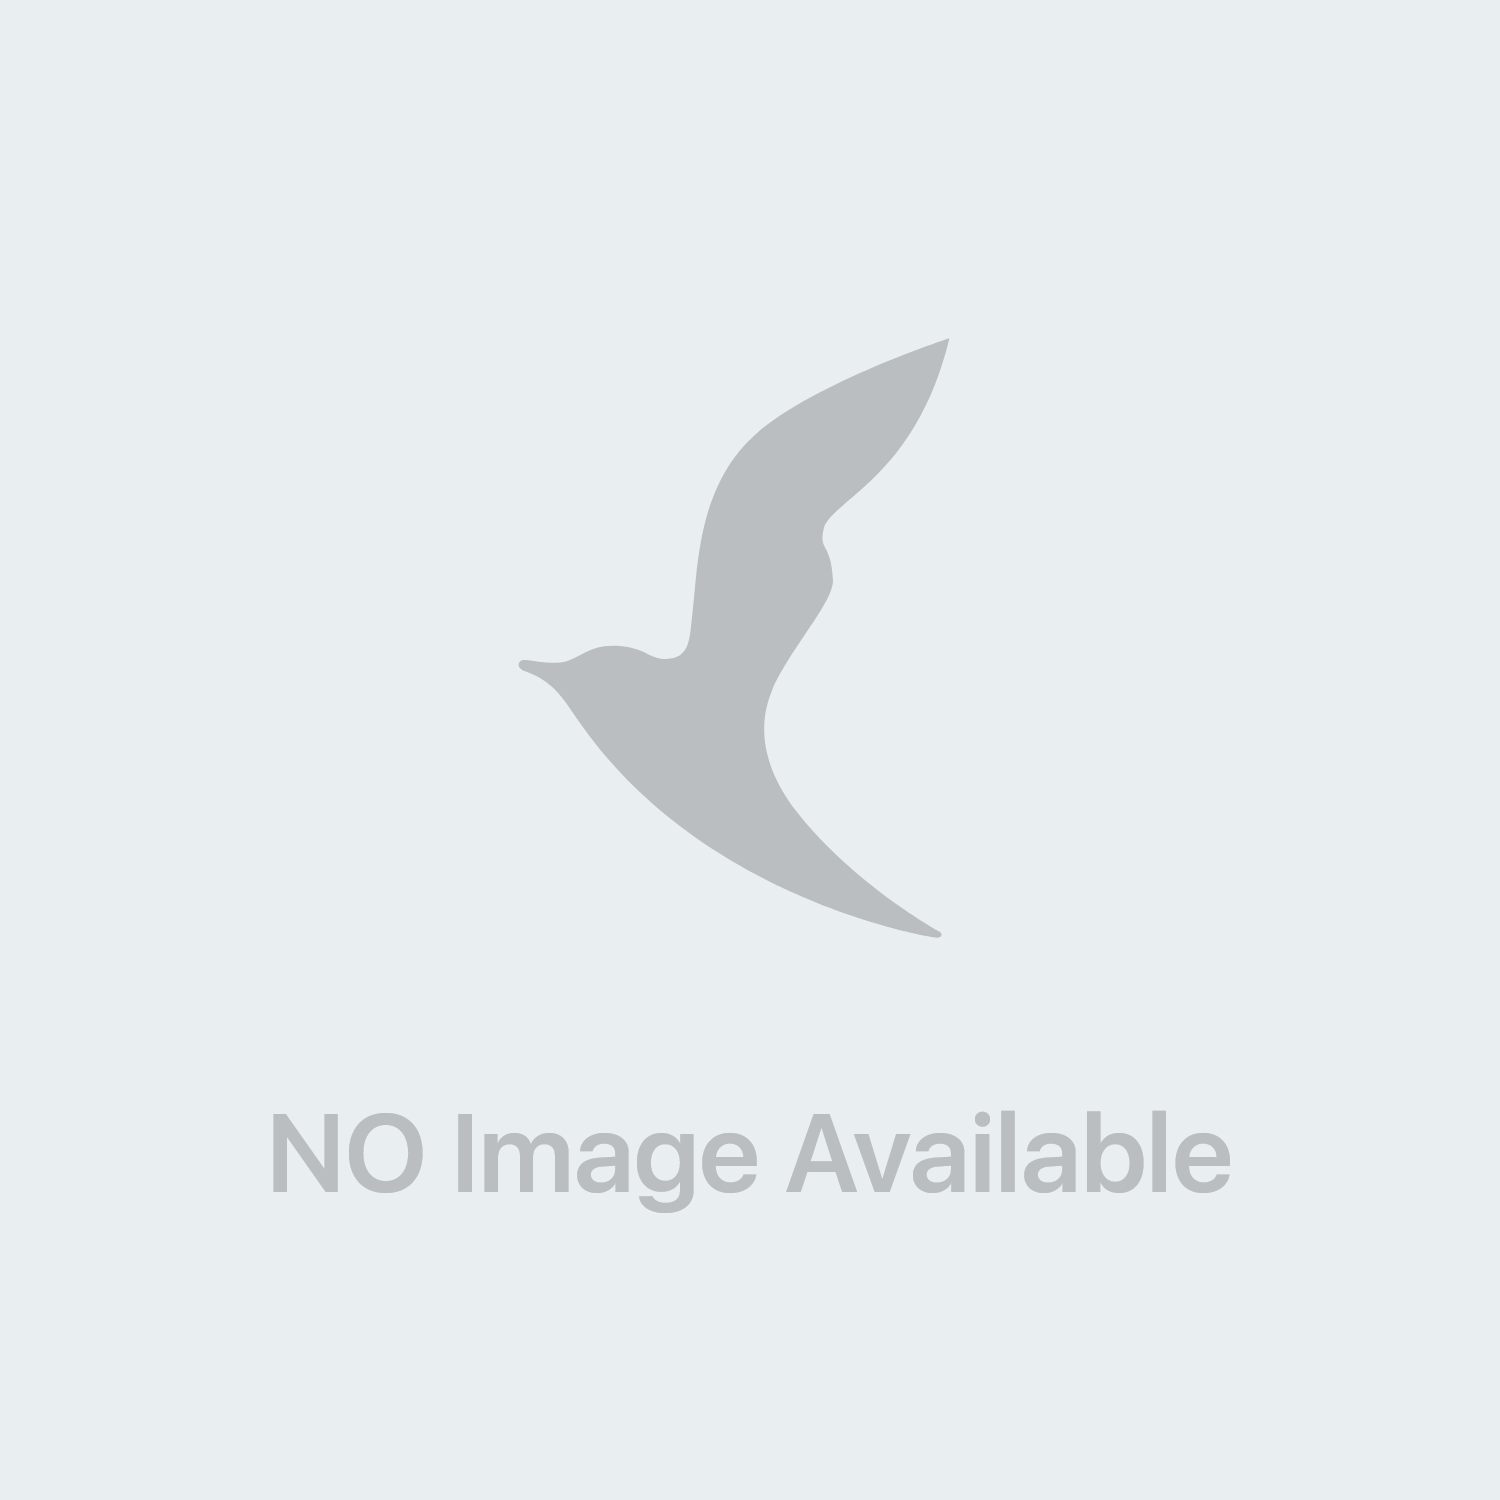 Planter's Mascara Balsamo Maxi-Volume All'Aloe Vera 10 Ml